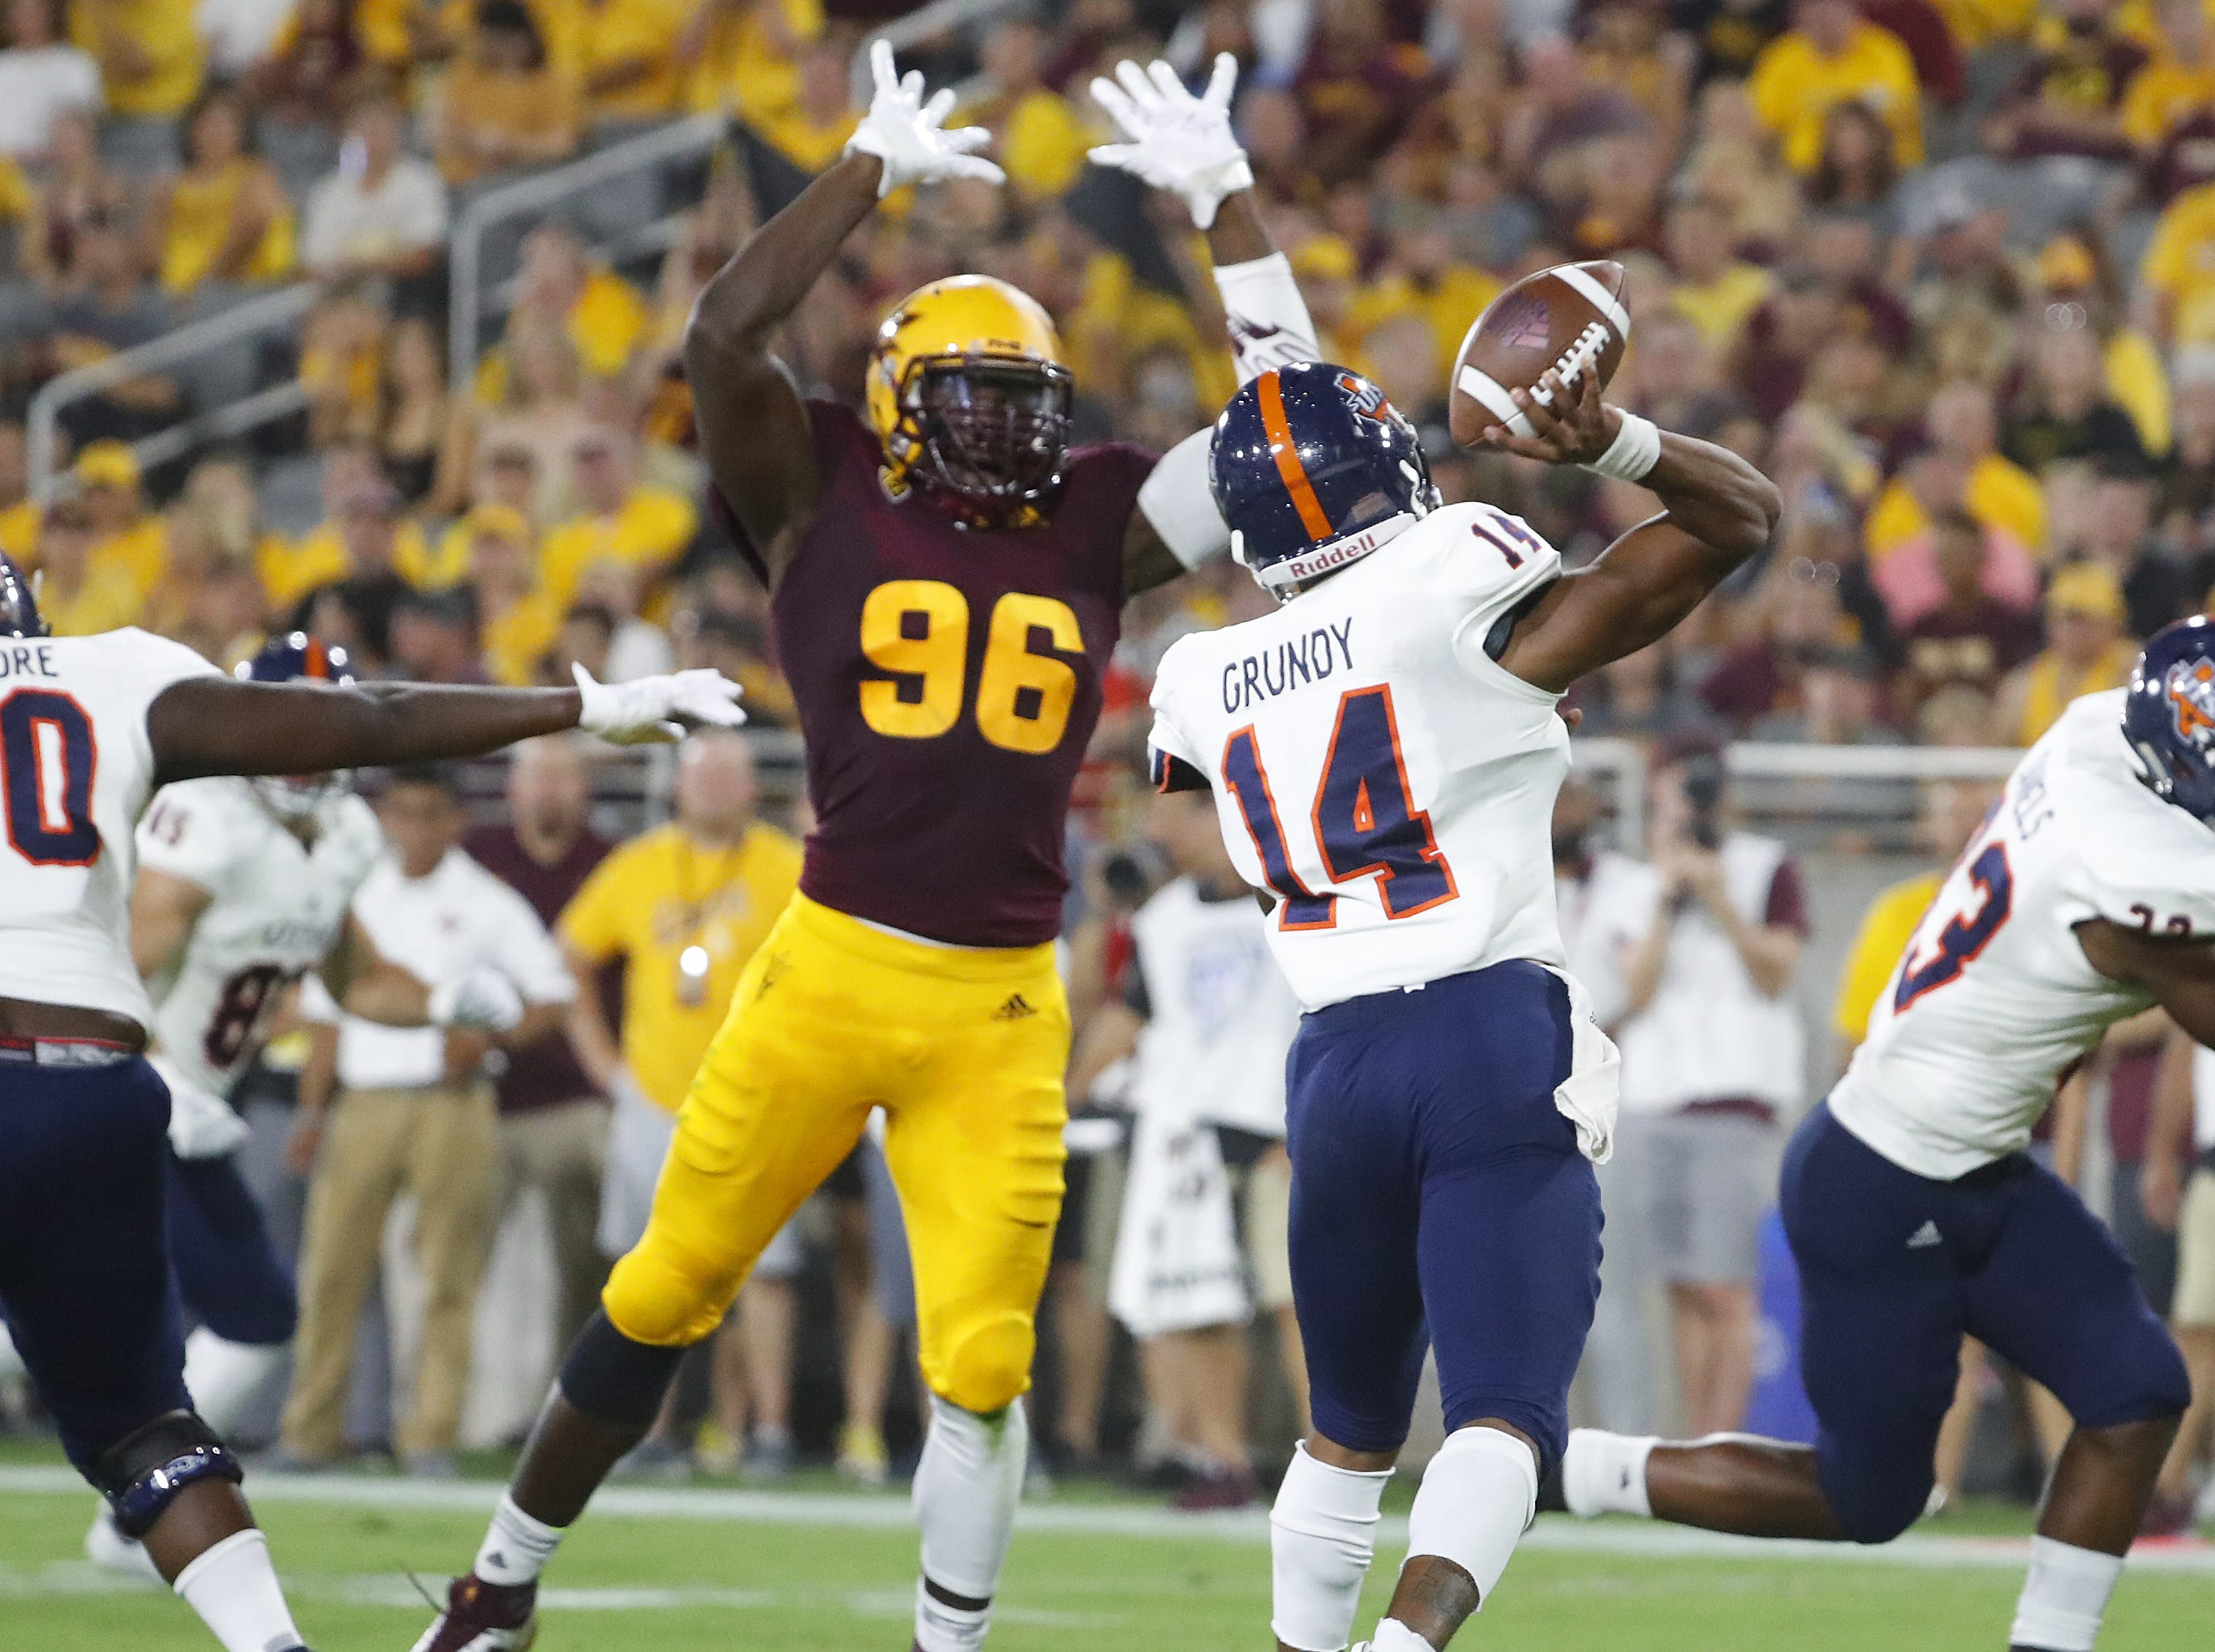 UTSA Roadrunners quarterback Cordale Grundy (14) throws a pass under pressure from Arizona State Sun Devils defensive lineman Jalen Bates (96) during the first half at Sun Devil Stadium in Tempe, Ariz. on Sept. 1, 2018.